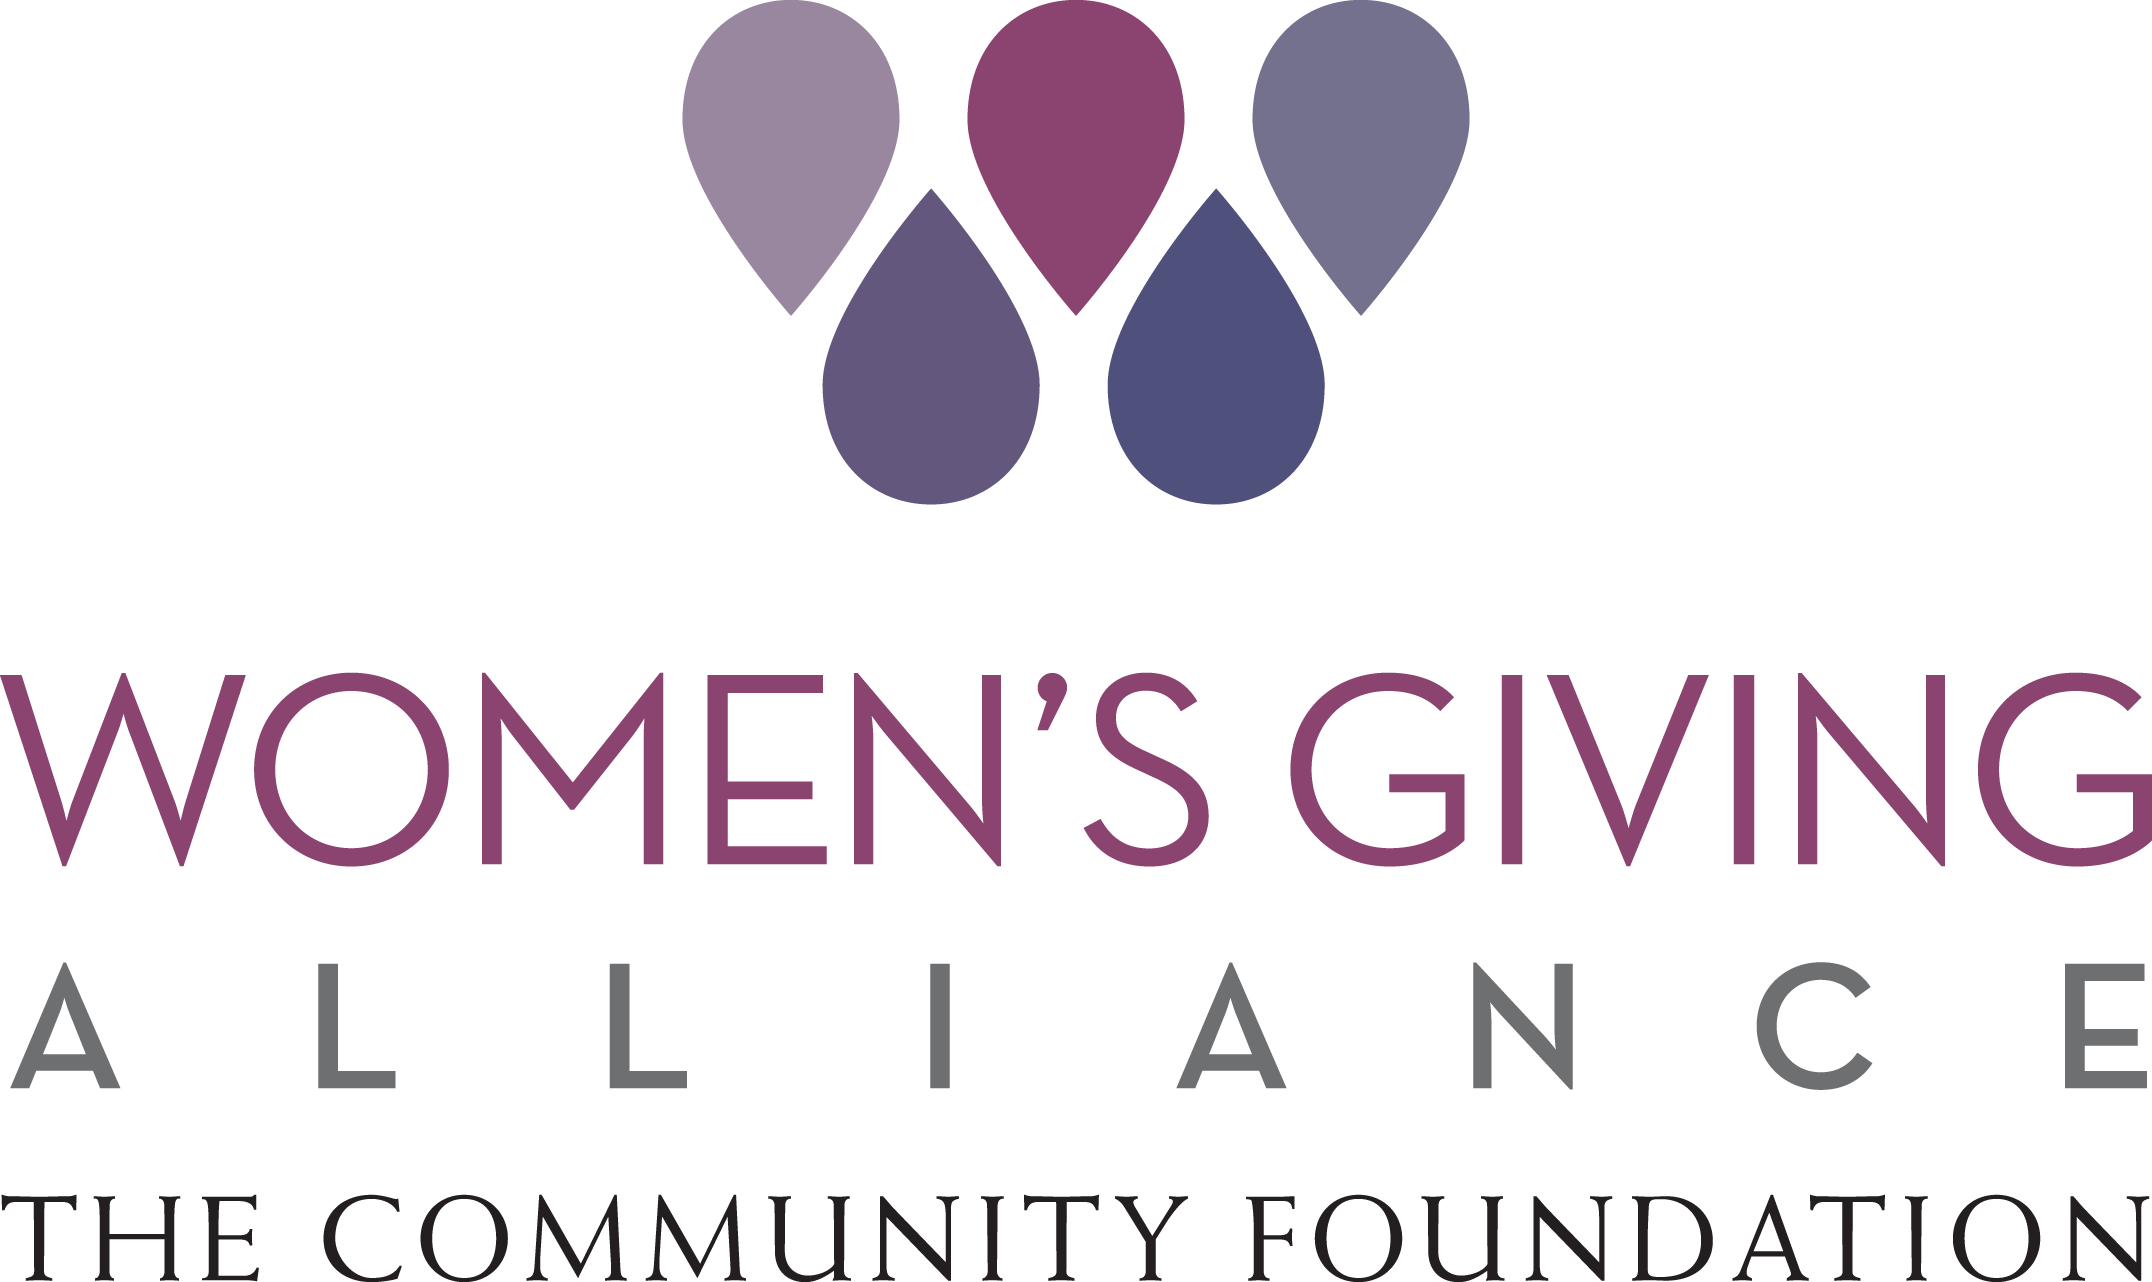 Women's Giving Alliance logo